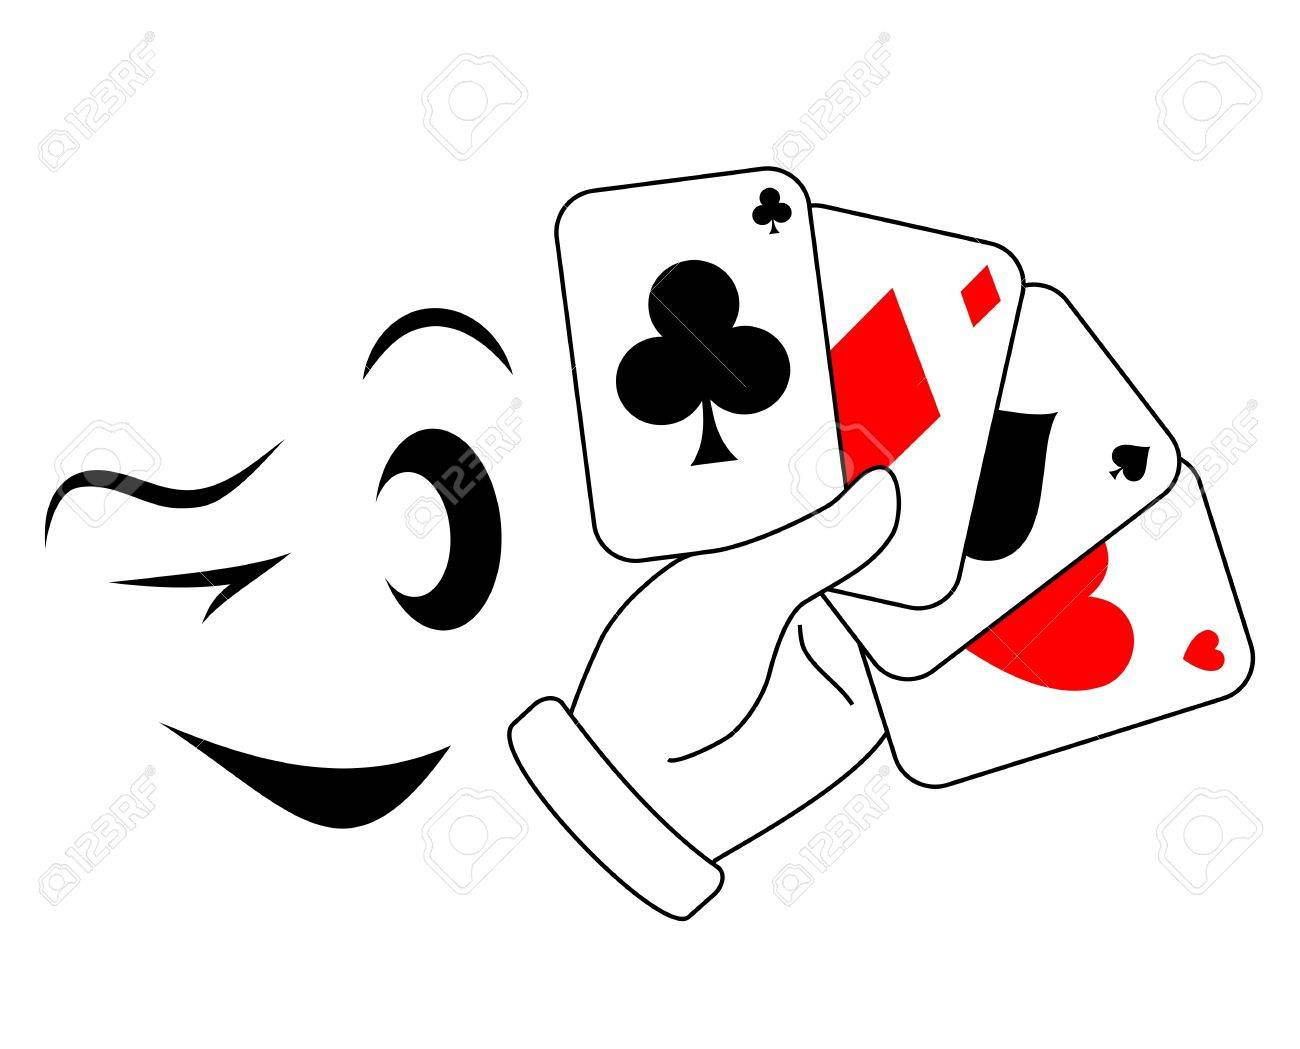 Draw Poker Player With A Wink Royalty Free Cliparts Vectors And